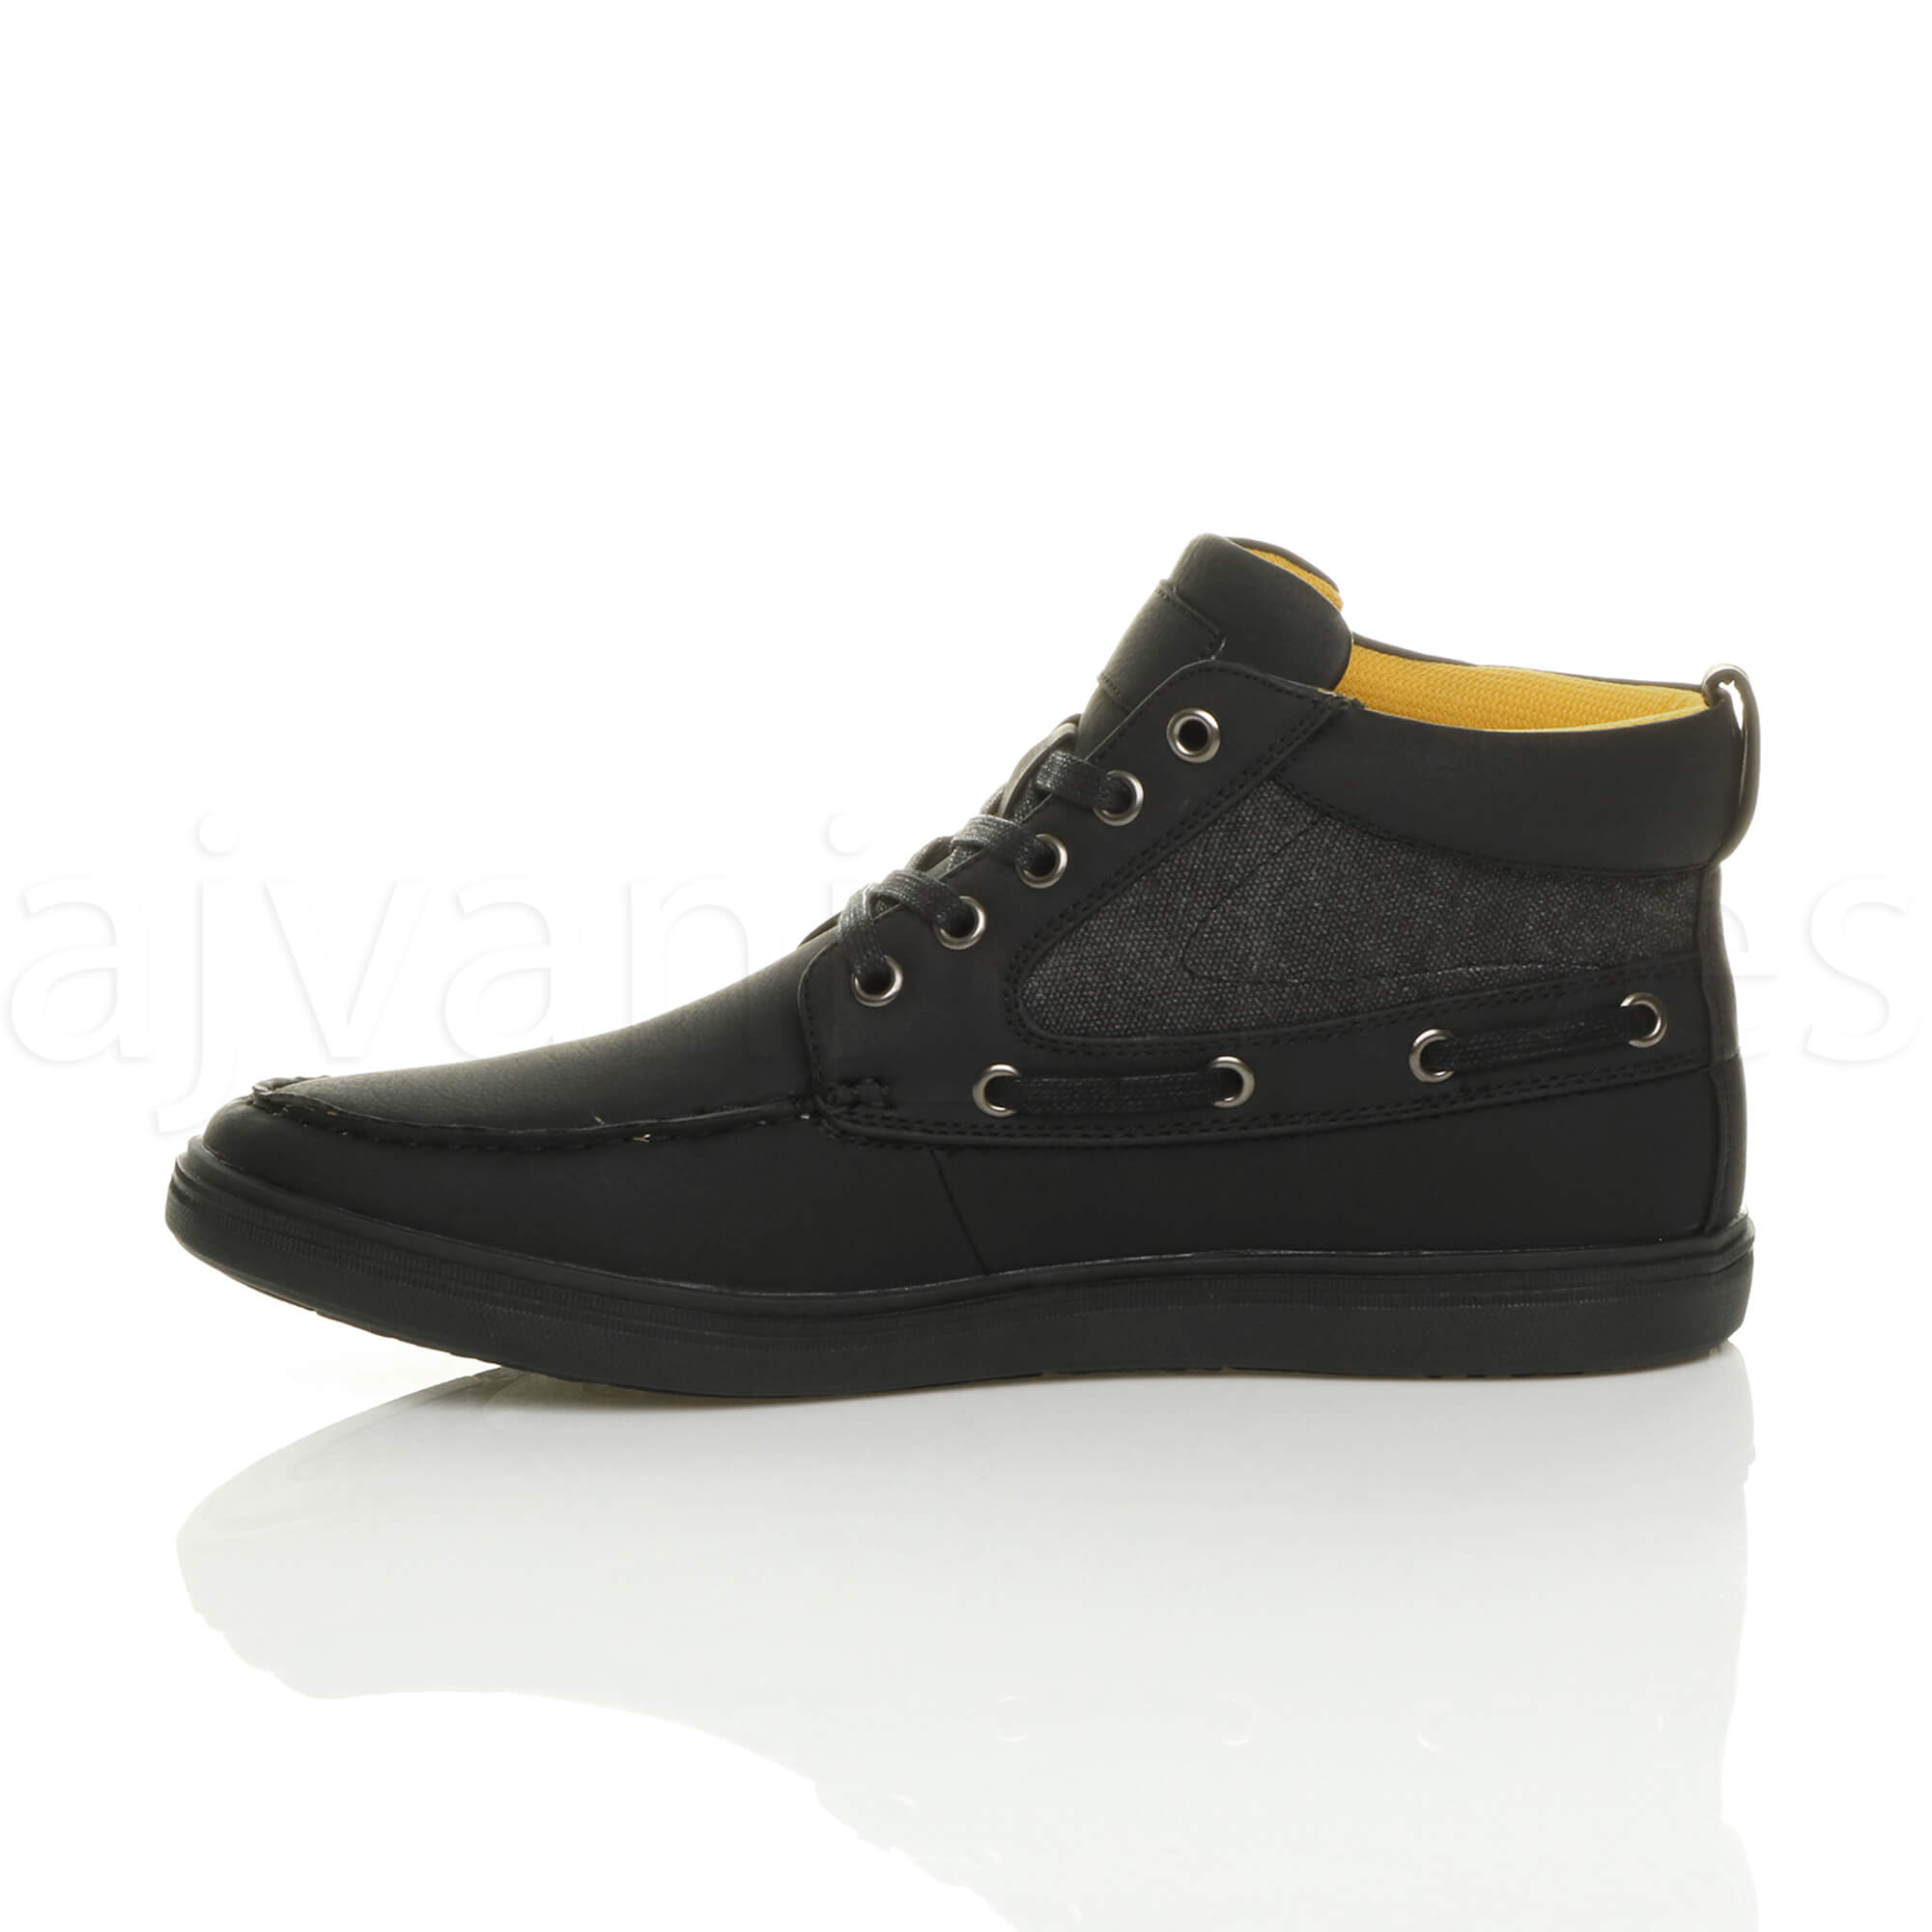 MENS-FLAT-LACE-UP-CASUAL-BOAT-CONTRAST-HI-TOP-TRAINERS-ANKLE-BOOTS-PUMPS-SIZE thumbnail 4